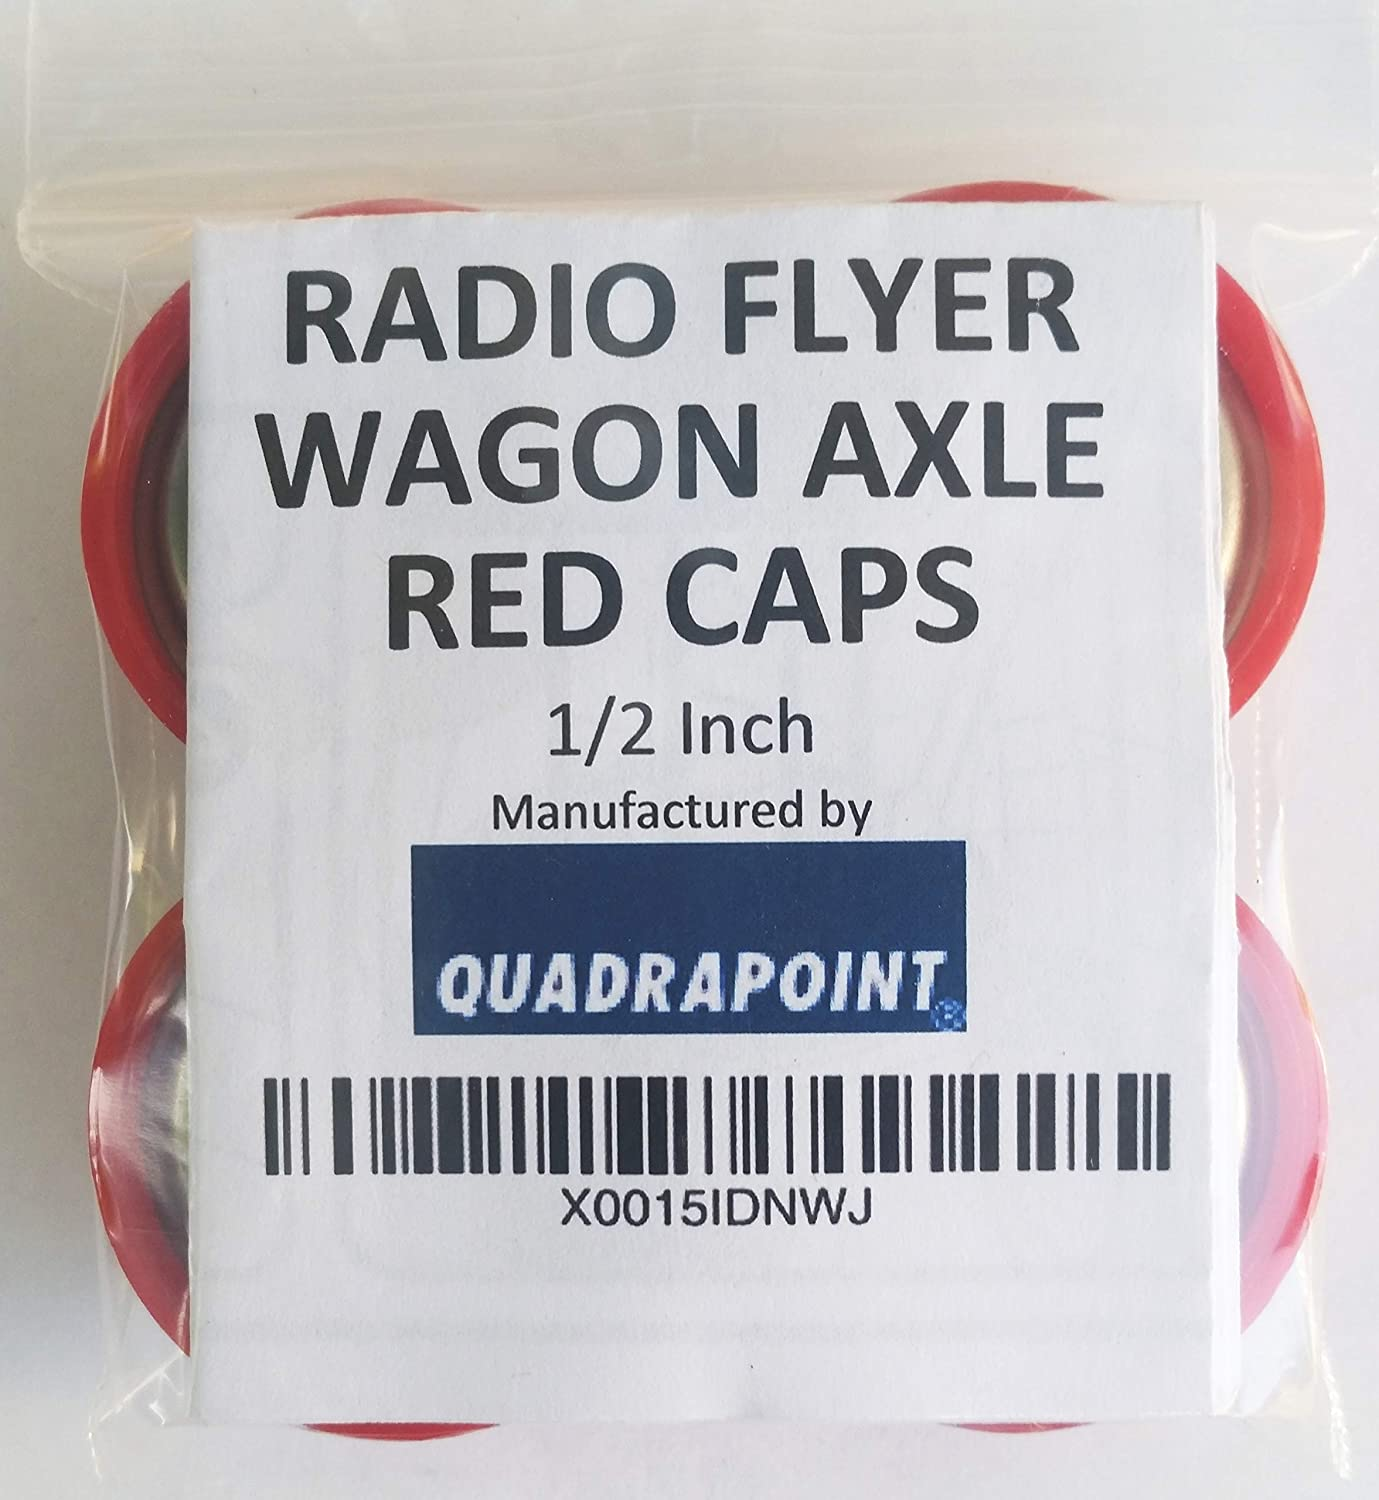 Quadrapoint Hub Cap Replacement for Radio Flyer Steel /& Wood Wagons 1//2 Red NOT for Plastic, Folding OR Little Wagon Model W5, Please Read Entire Product Description